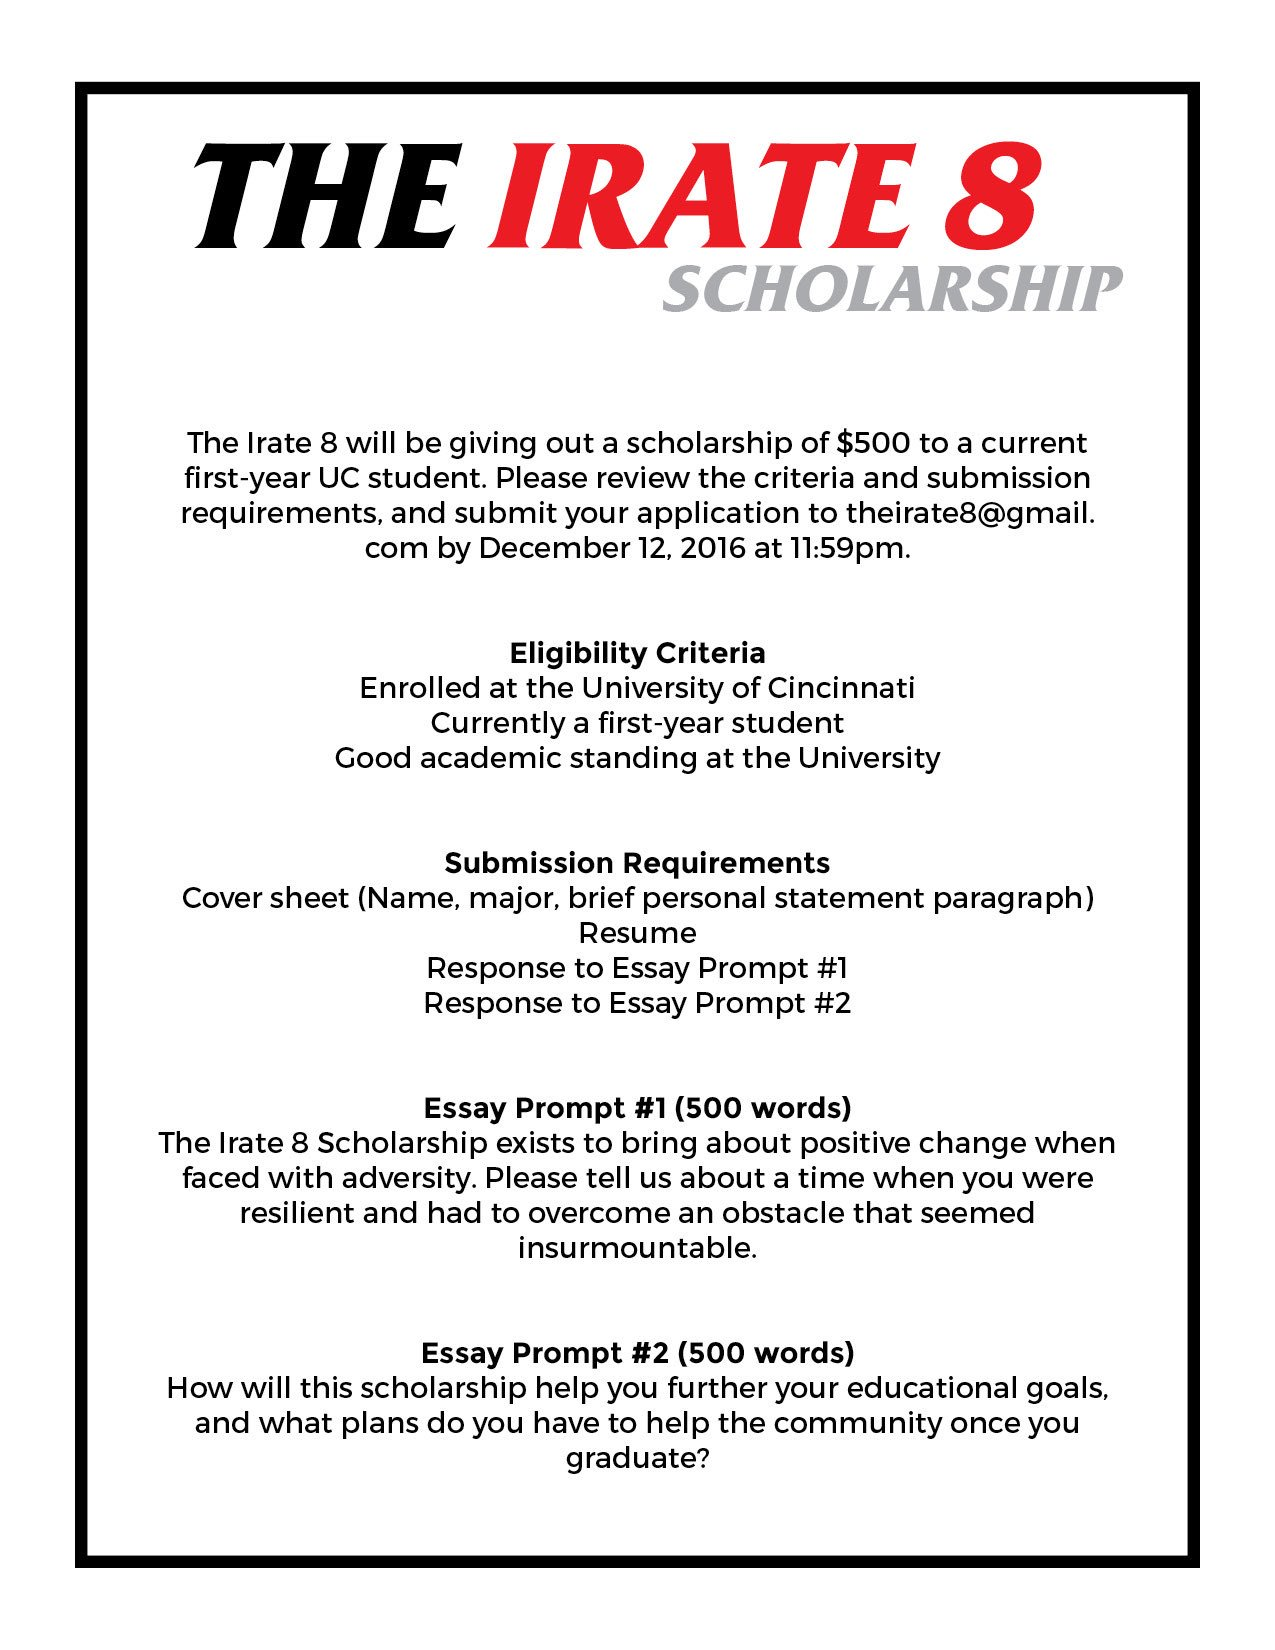 Examples Of A Proposal Essay The Irate Eight On Twitter The Irate  Will Be Giving Out A Scholarship  Apply By  To Be Considered Theirate Httpstcowmoyapnp  English Class Reflection Essay also Graduating From High School Essay The Irate Eight On Twitter The Irate  Will Be Giving Out A  Example Thesis Statements For Essays